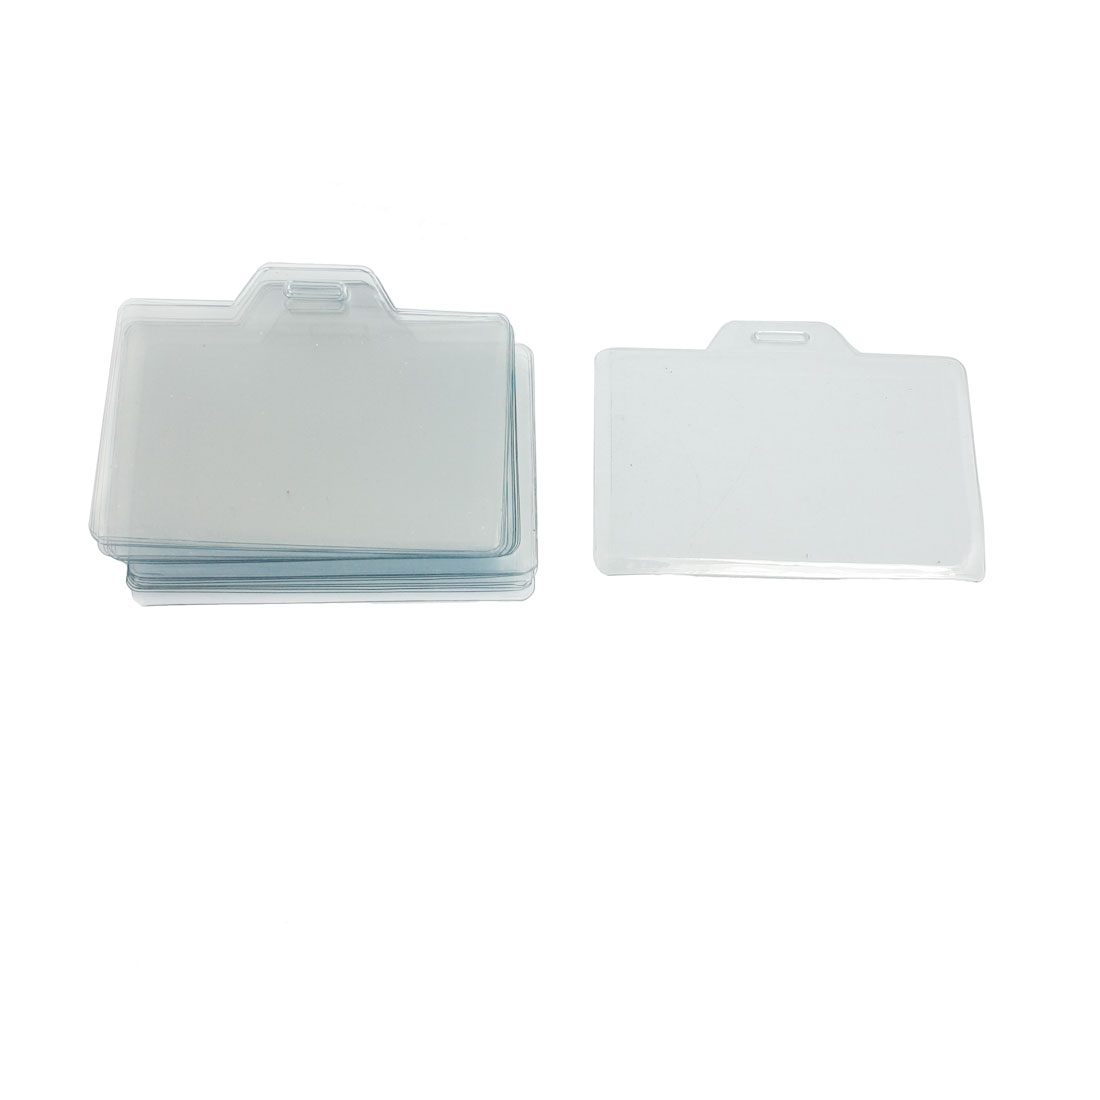 "20 Pcs 3.3"" x 2"" Clear Plastic Name Tag Business ID Card Holder"